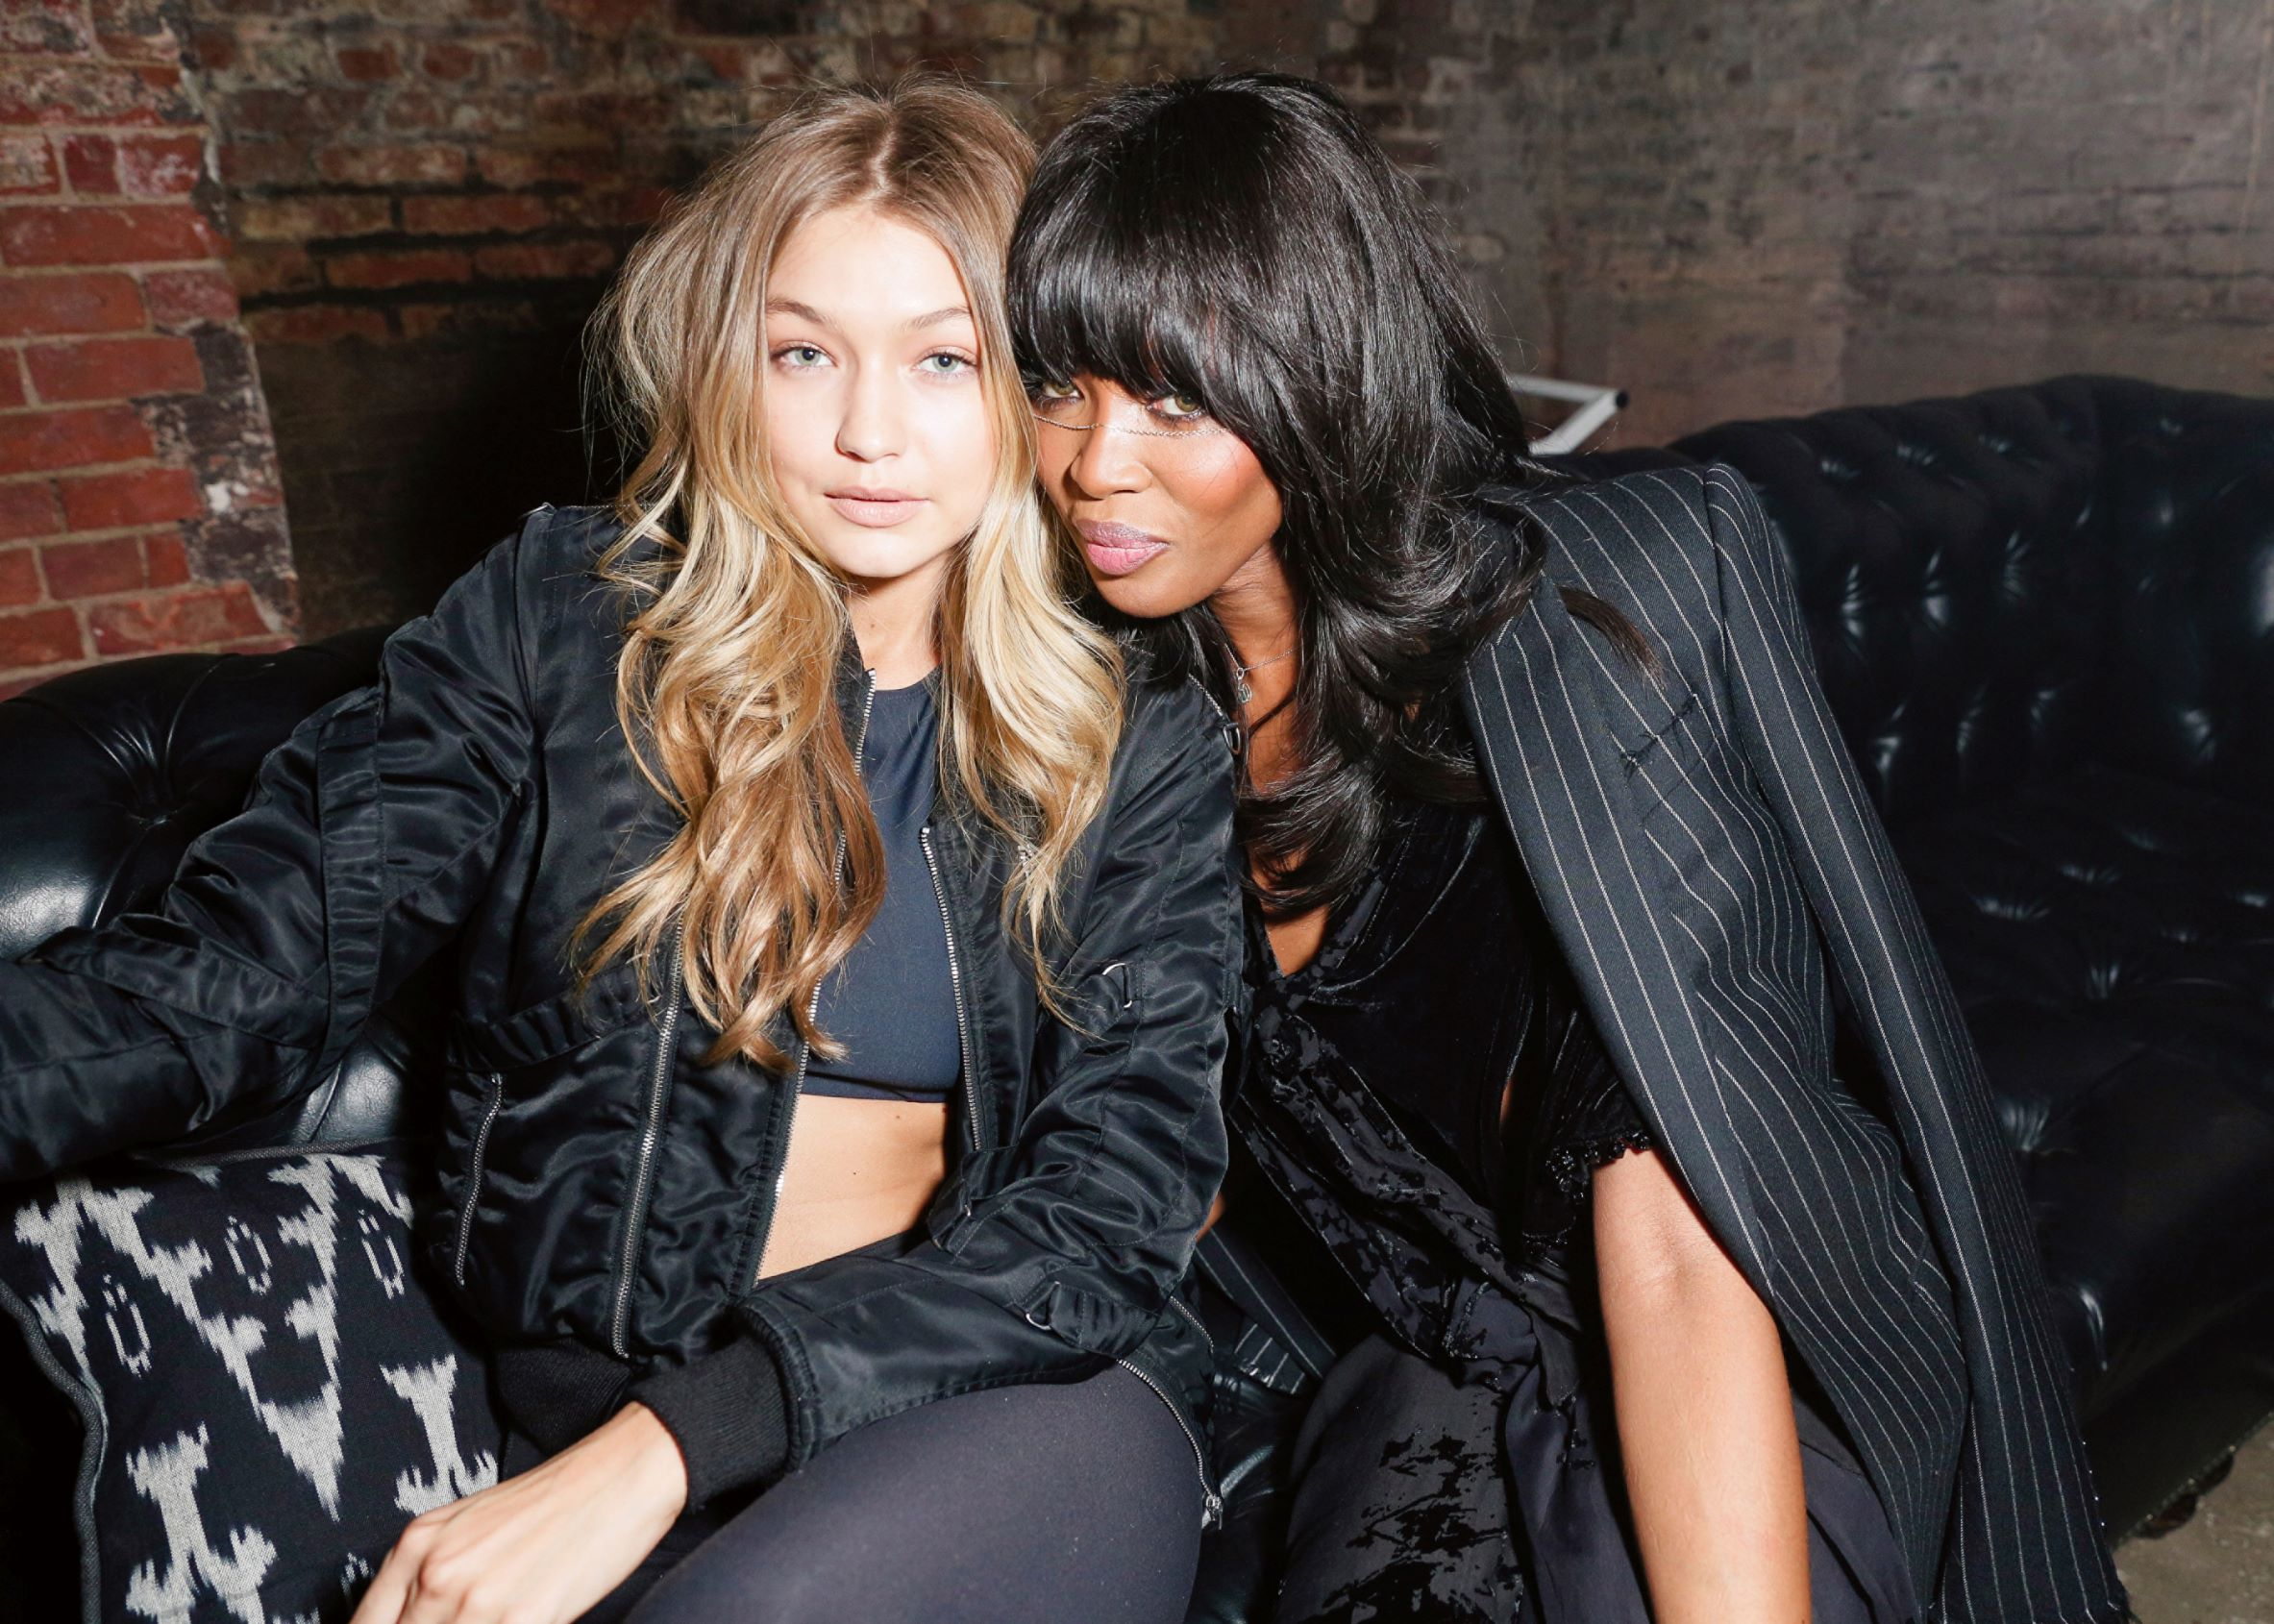 Gigi Hadid and Naomi Campbell at the 'Macabre Suite' by Lucien Smith, 2401 3rd Avenue, Bronx, NY, USA, 2015. Photo by Matteo Prandoni/BFA.com